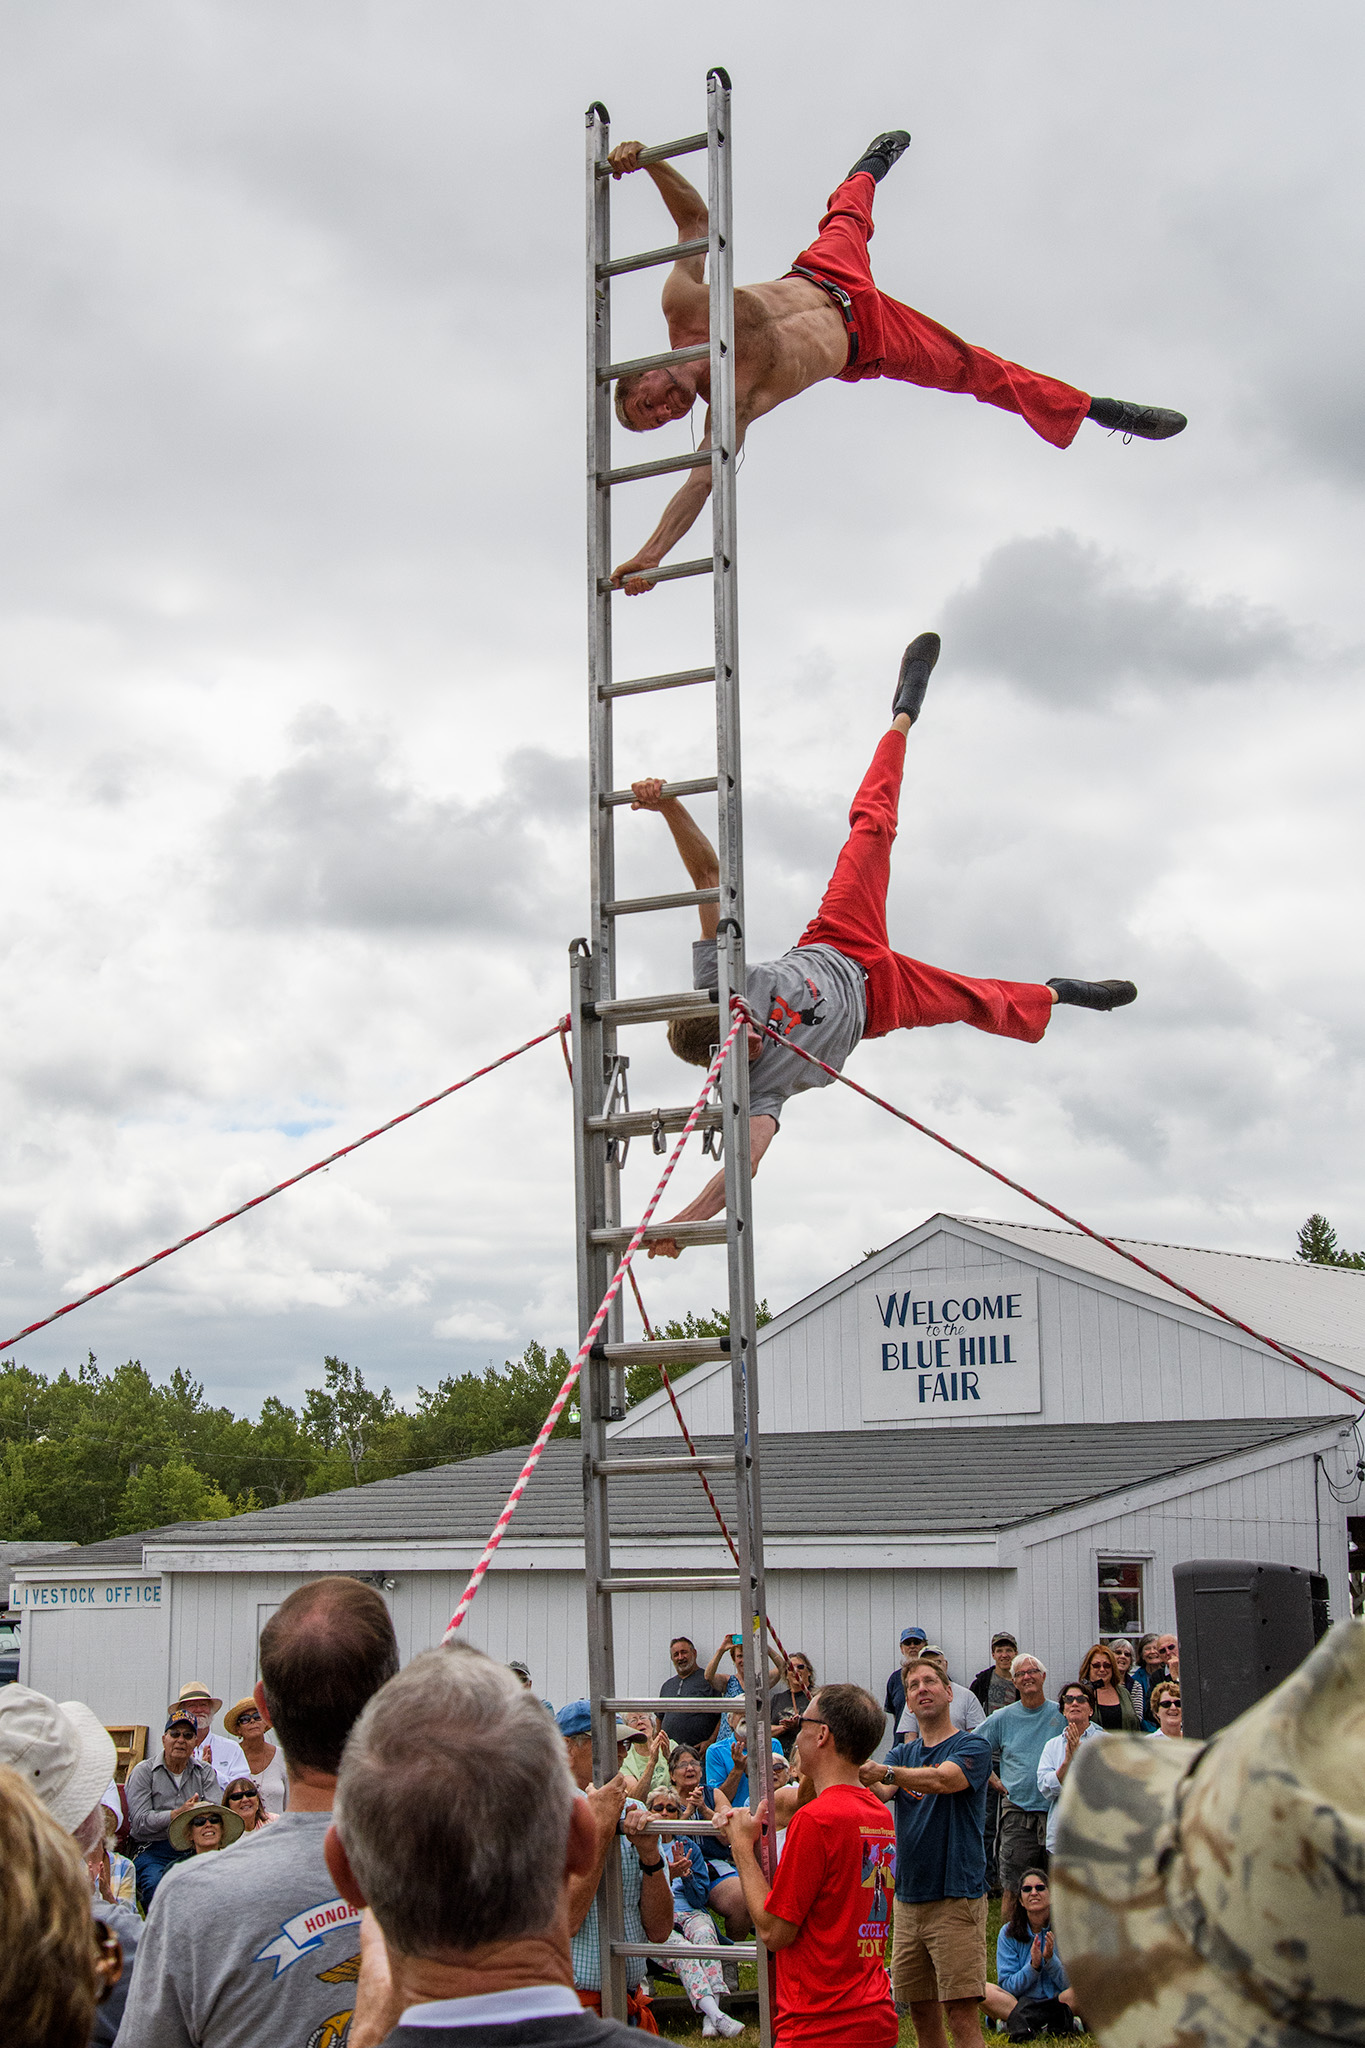 The Red Trouser Show, in the vaudeville tradition, relies on several willing volunteers.